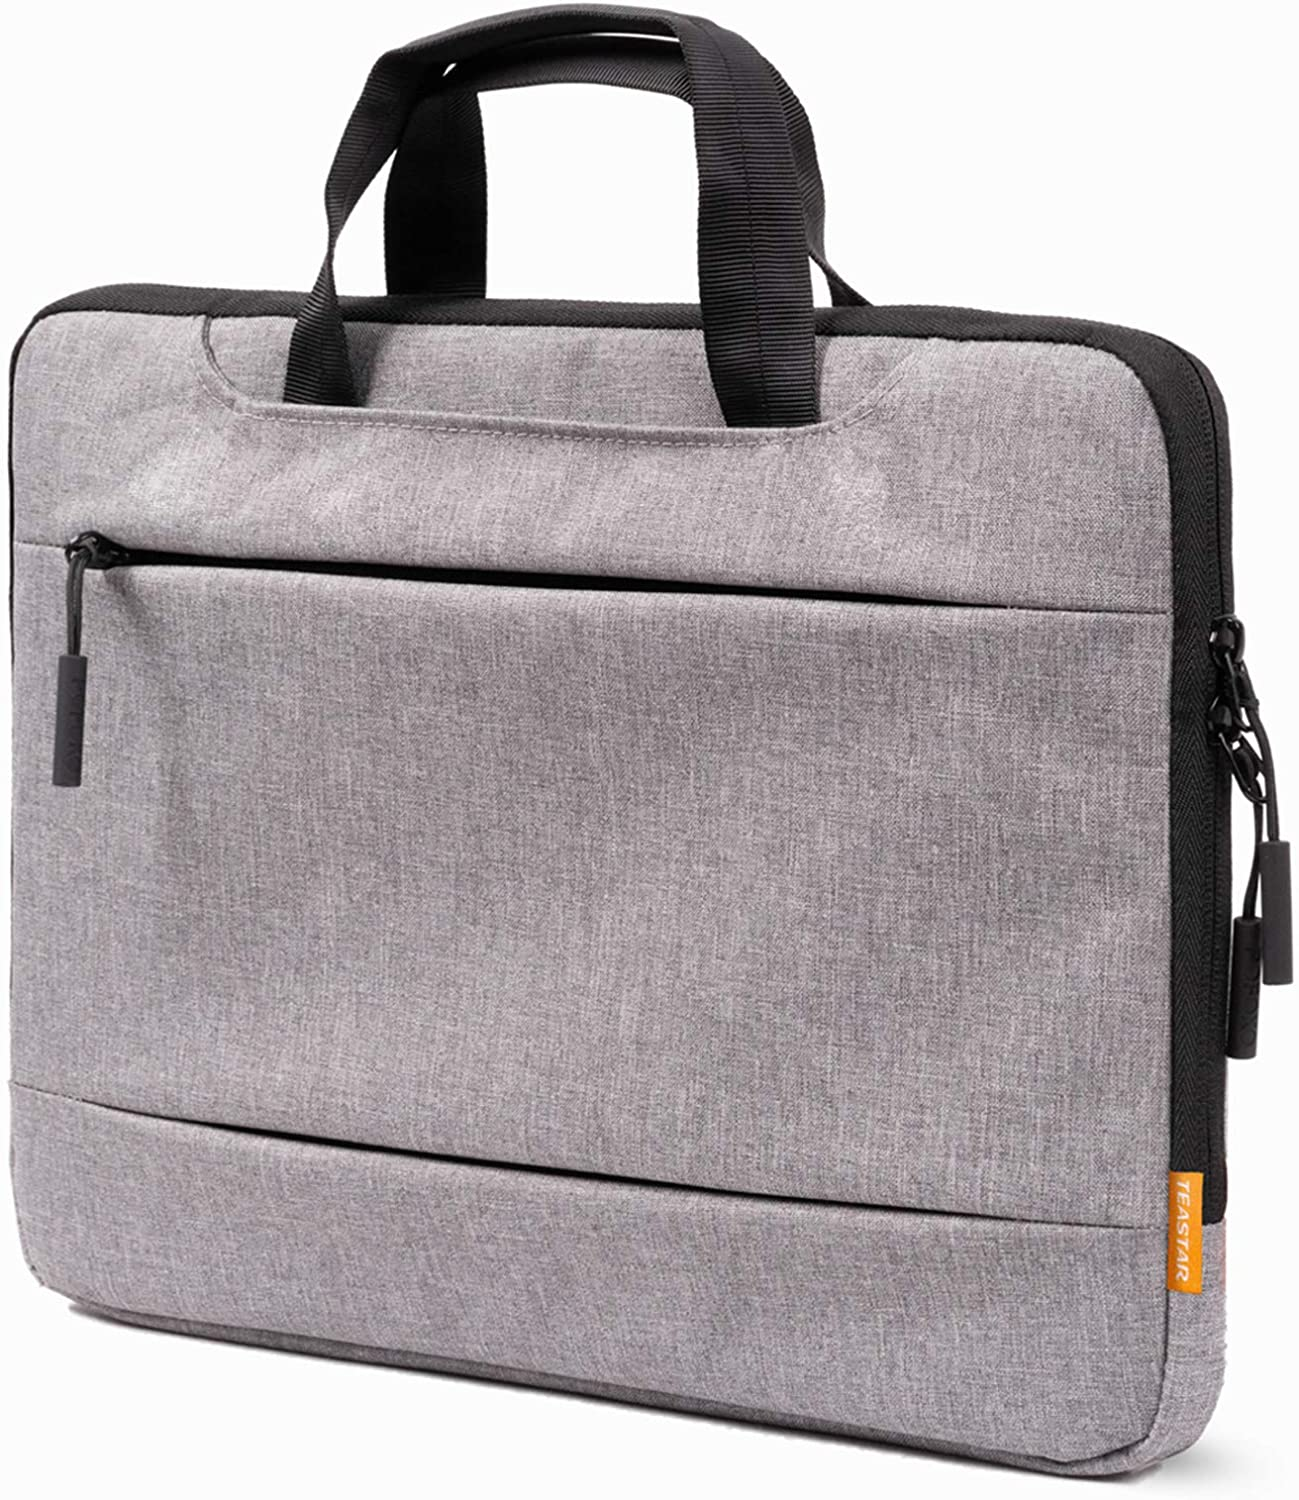 Laptop Sleeve Case 14 15 15.4 Inch Briefcase Protective Bag Notebook Carrying Case Tablet Sleeve Computer Business Laptop Bag for Men Women Compatible with MacBook Pro MacBook Air Gray